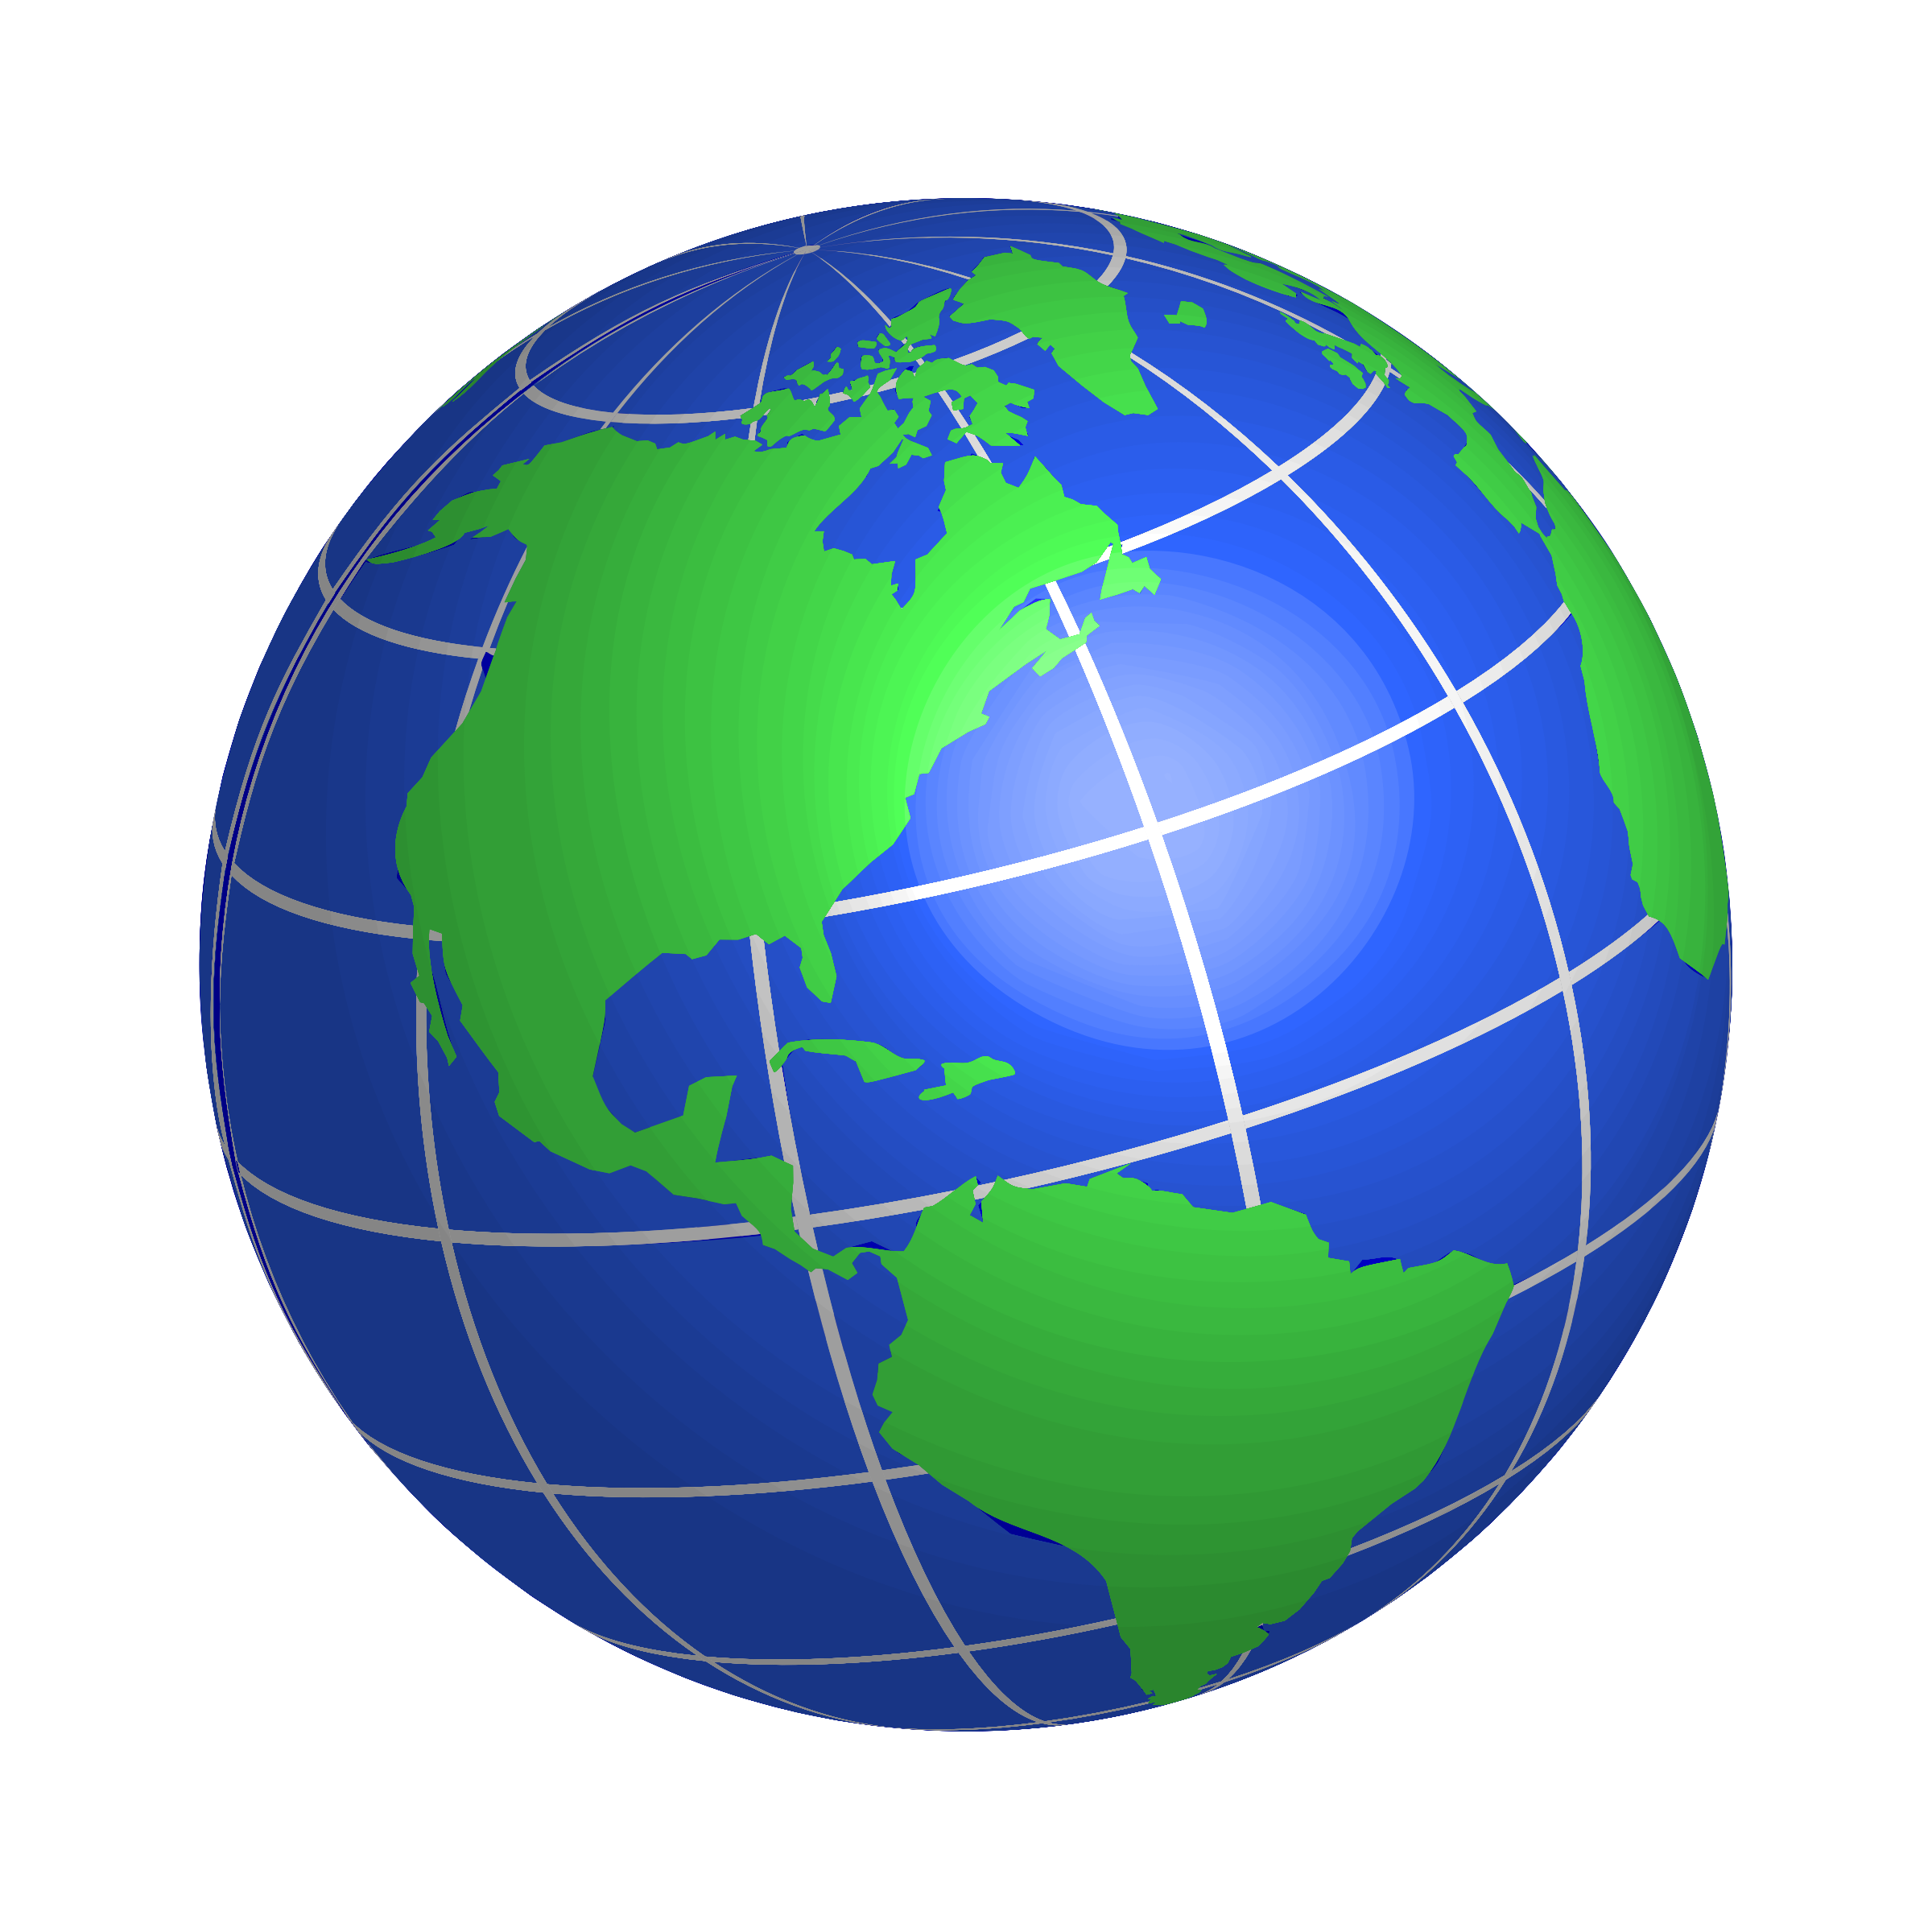 Globe Earth Clipart Black And White Free Images Transparent Png.